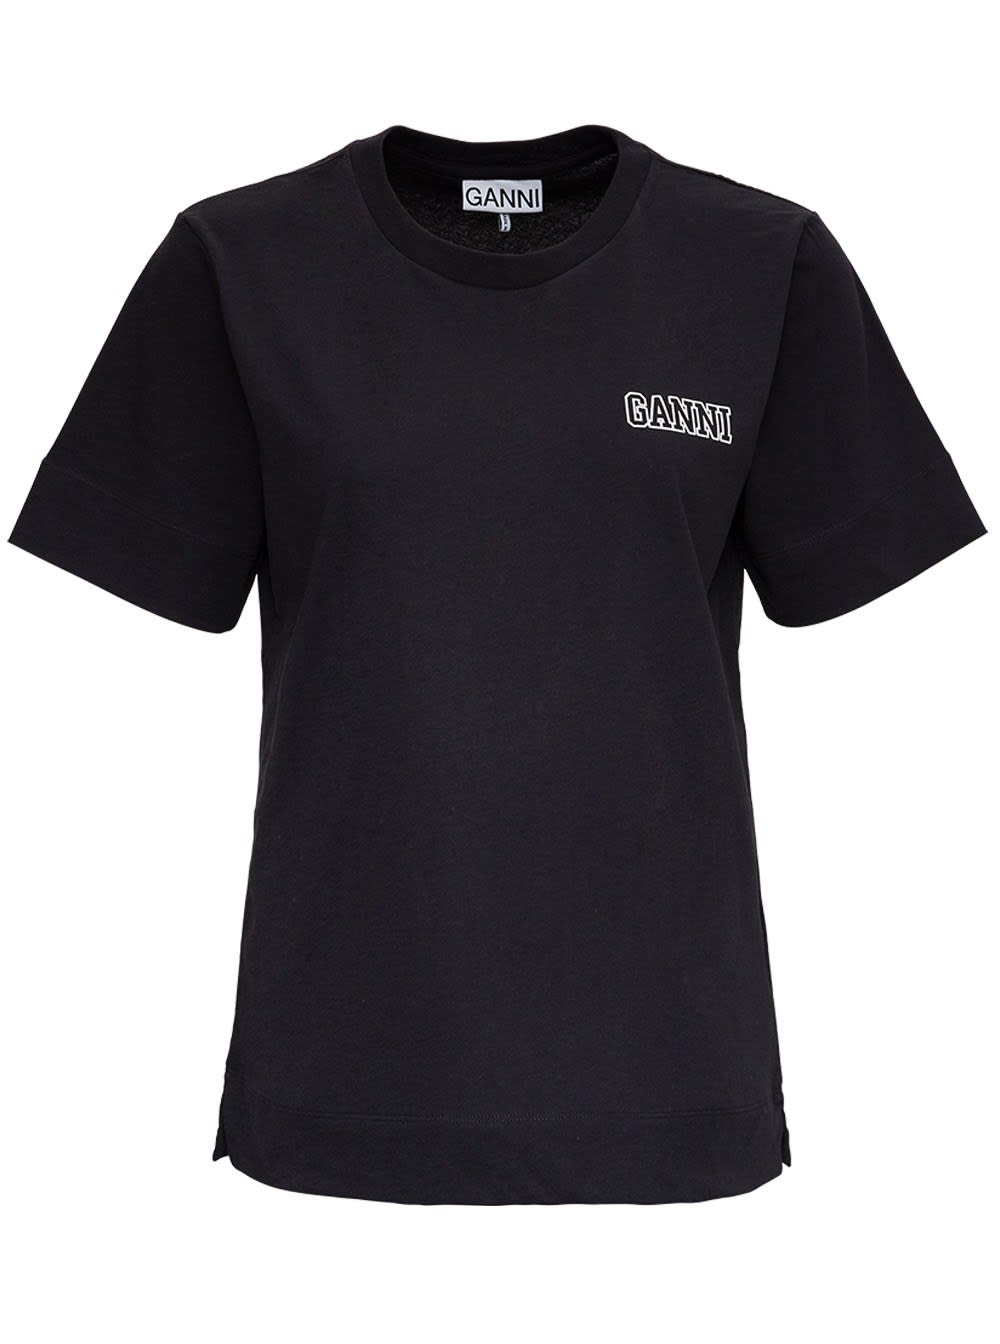 Ganni Thin Software Recycled Jersey T-shirt In Black